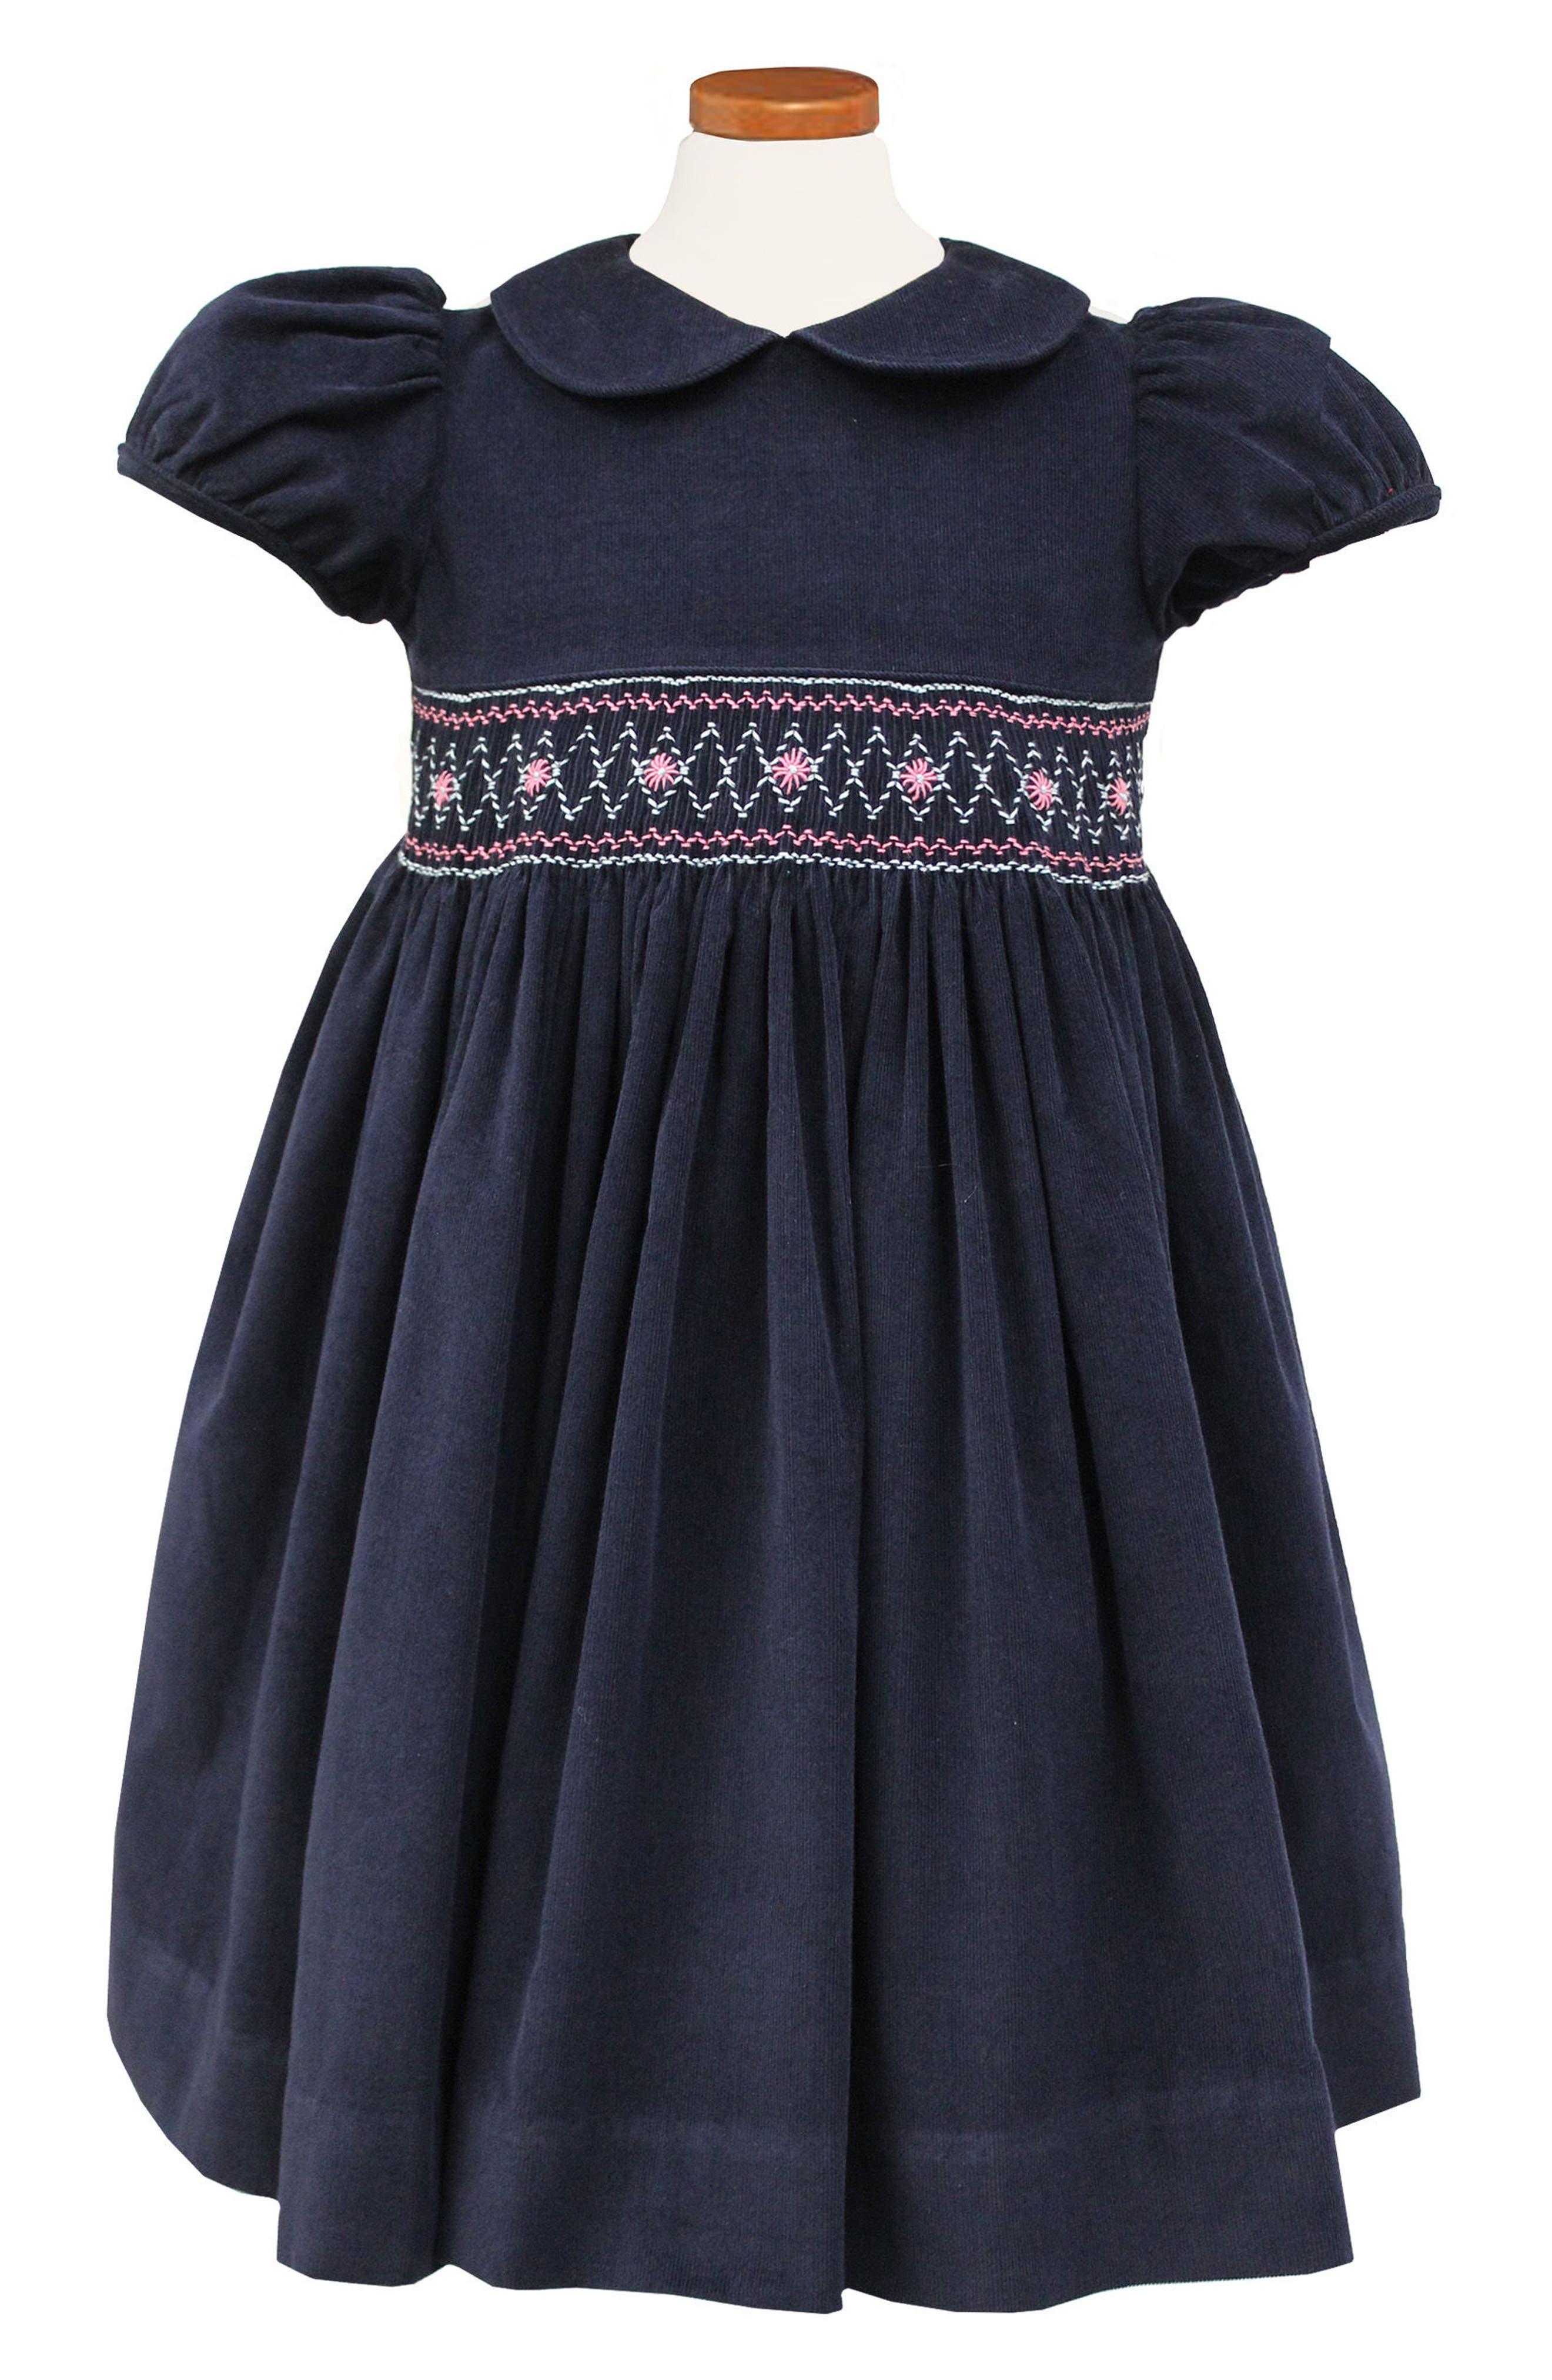 Embroidered Smocked Waist Dress,                             Alternate thumbnail 2, color,                             400